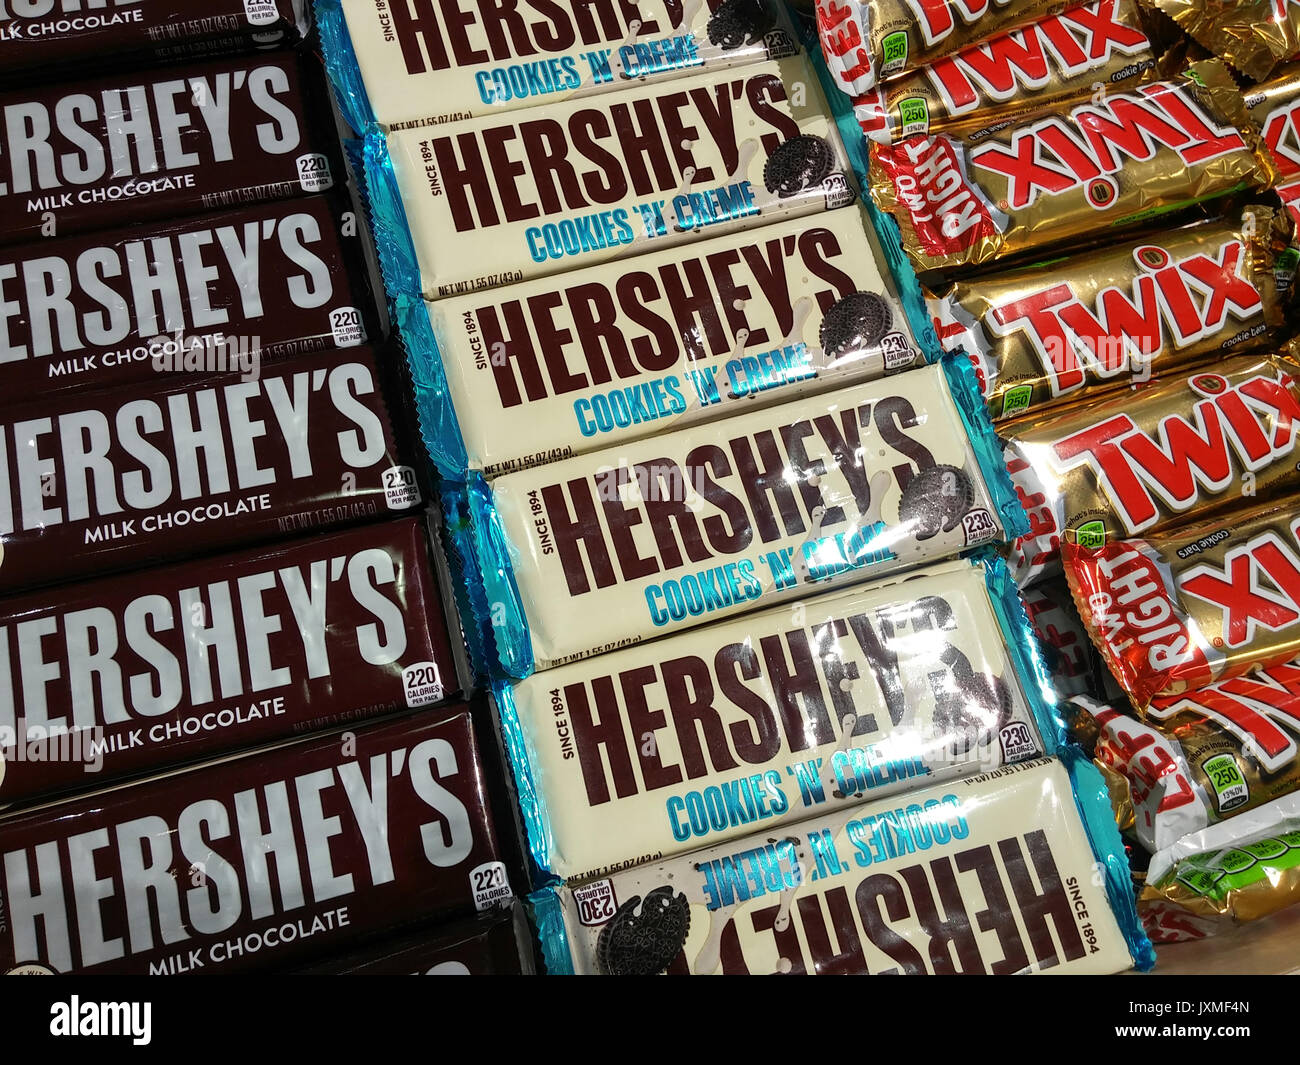 The Hershey Co. candy in New York on Saturday, August 12, 2017. Hershey's licenses the production of KitKat in the U.S. from Nestlé. The Hershey Co. recently reported second-quarter profit and sales that pleased Wall Street but issued a warning that because of fewer shopping trips by consumers year-end profits may be down. (© Richard B. Levine) - Stock Image